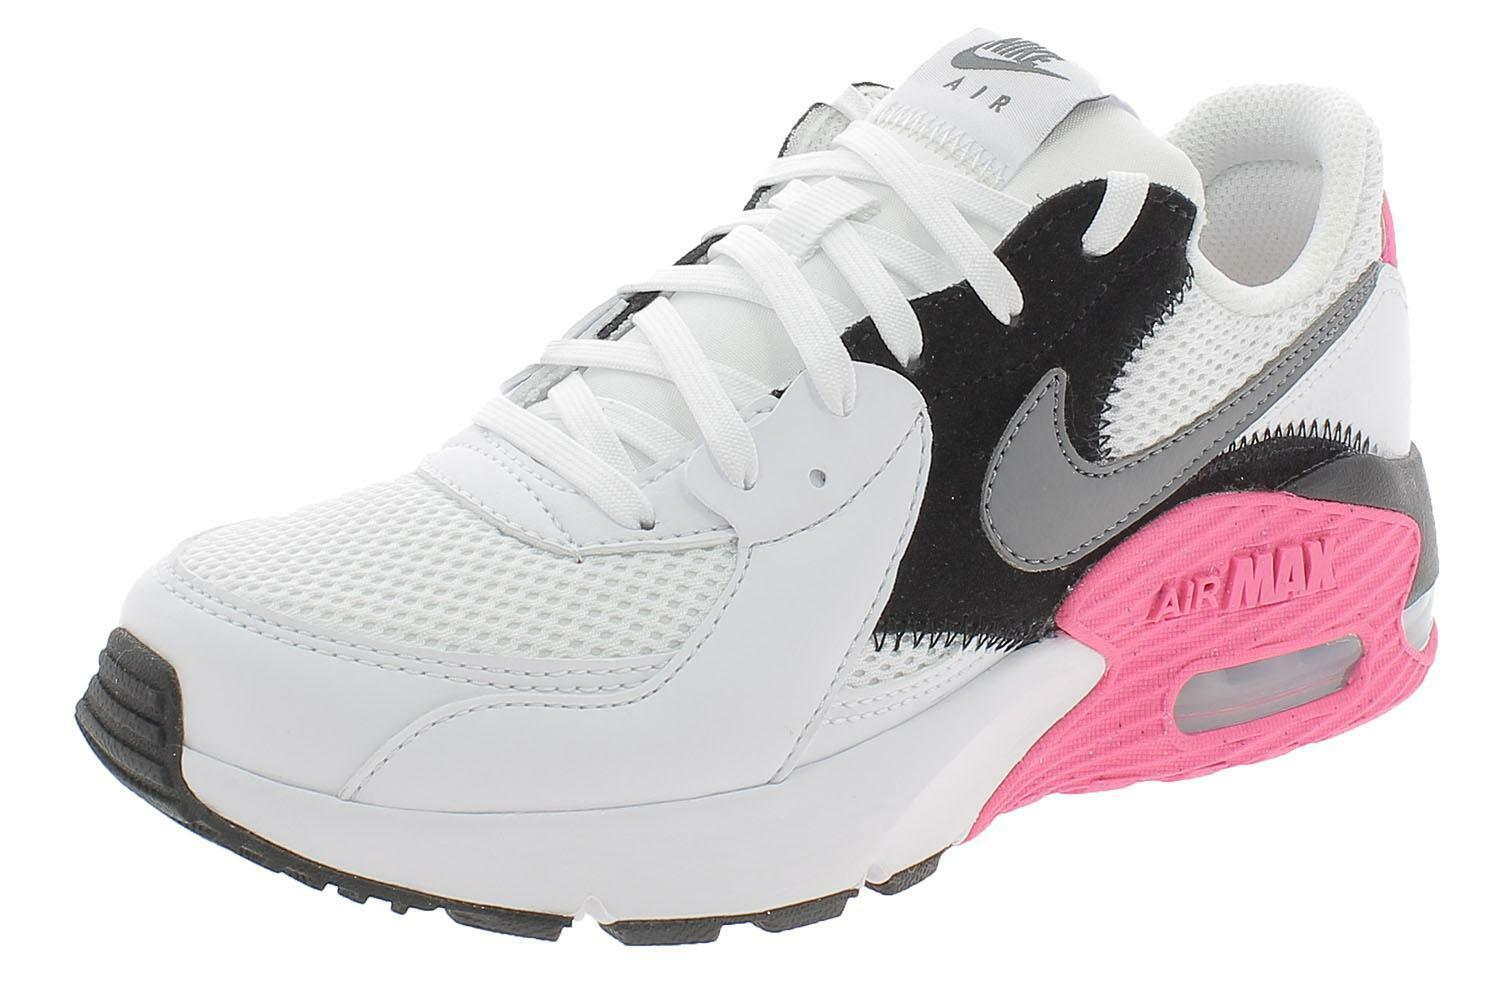 Nike wmns air max excee scarpe sportive donna bianche cd5432100